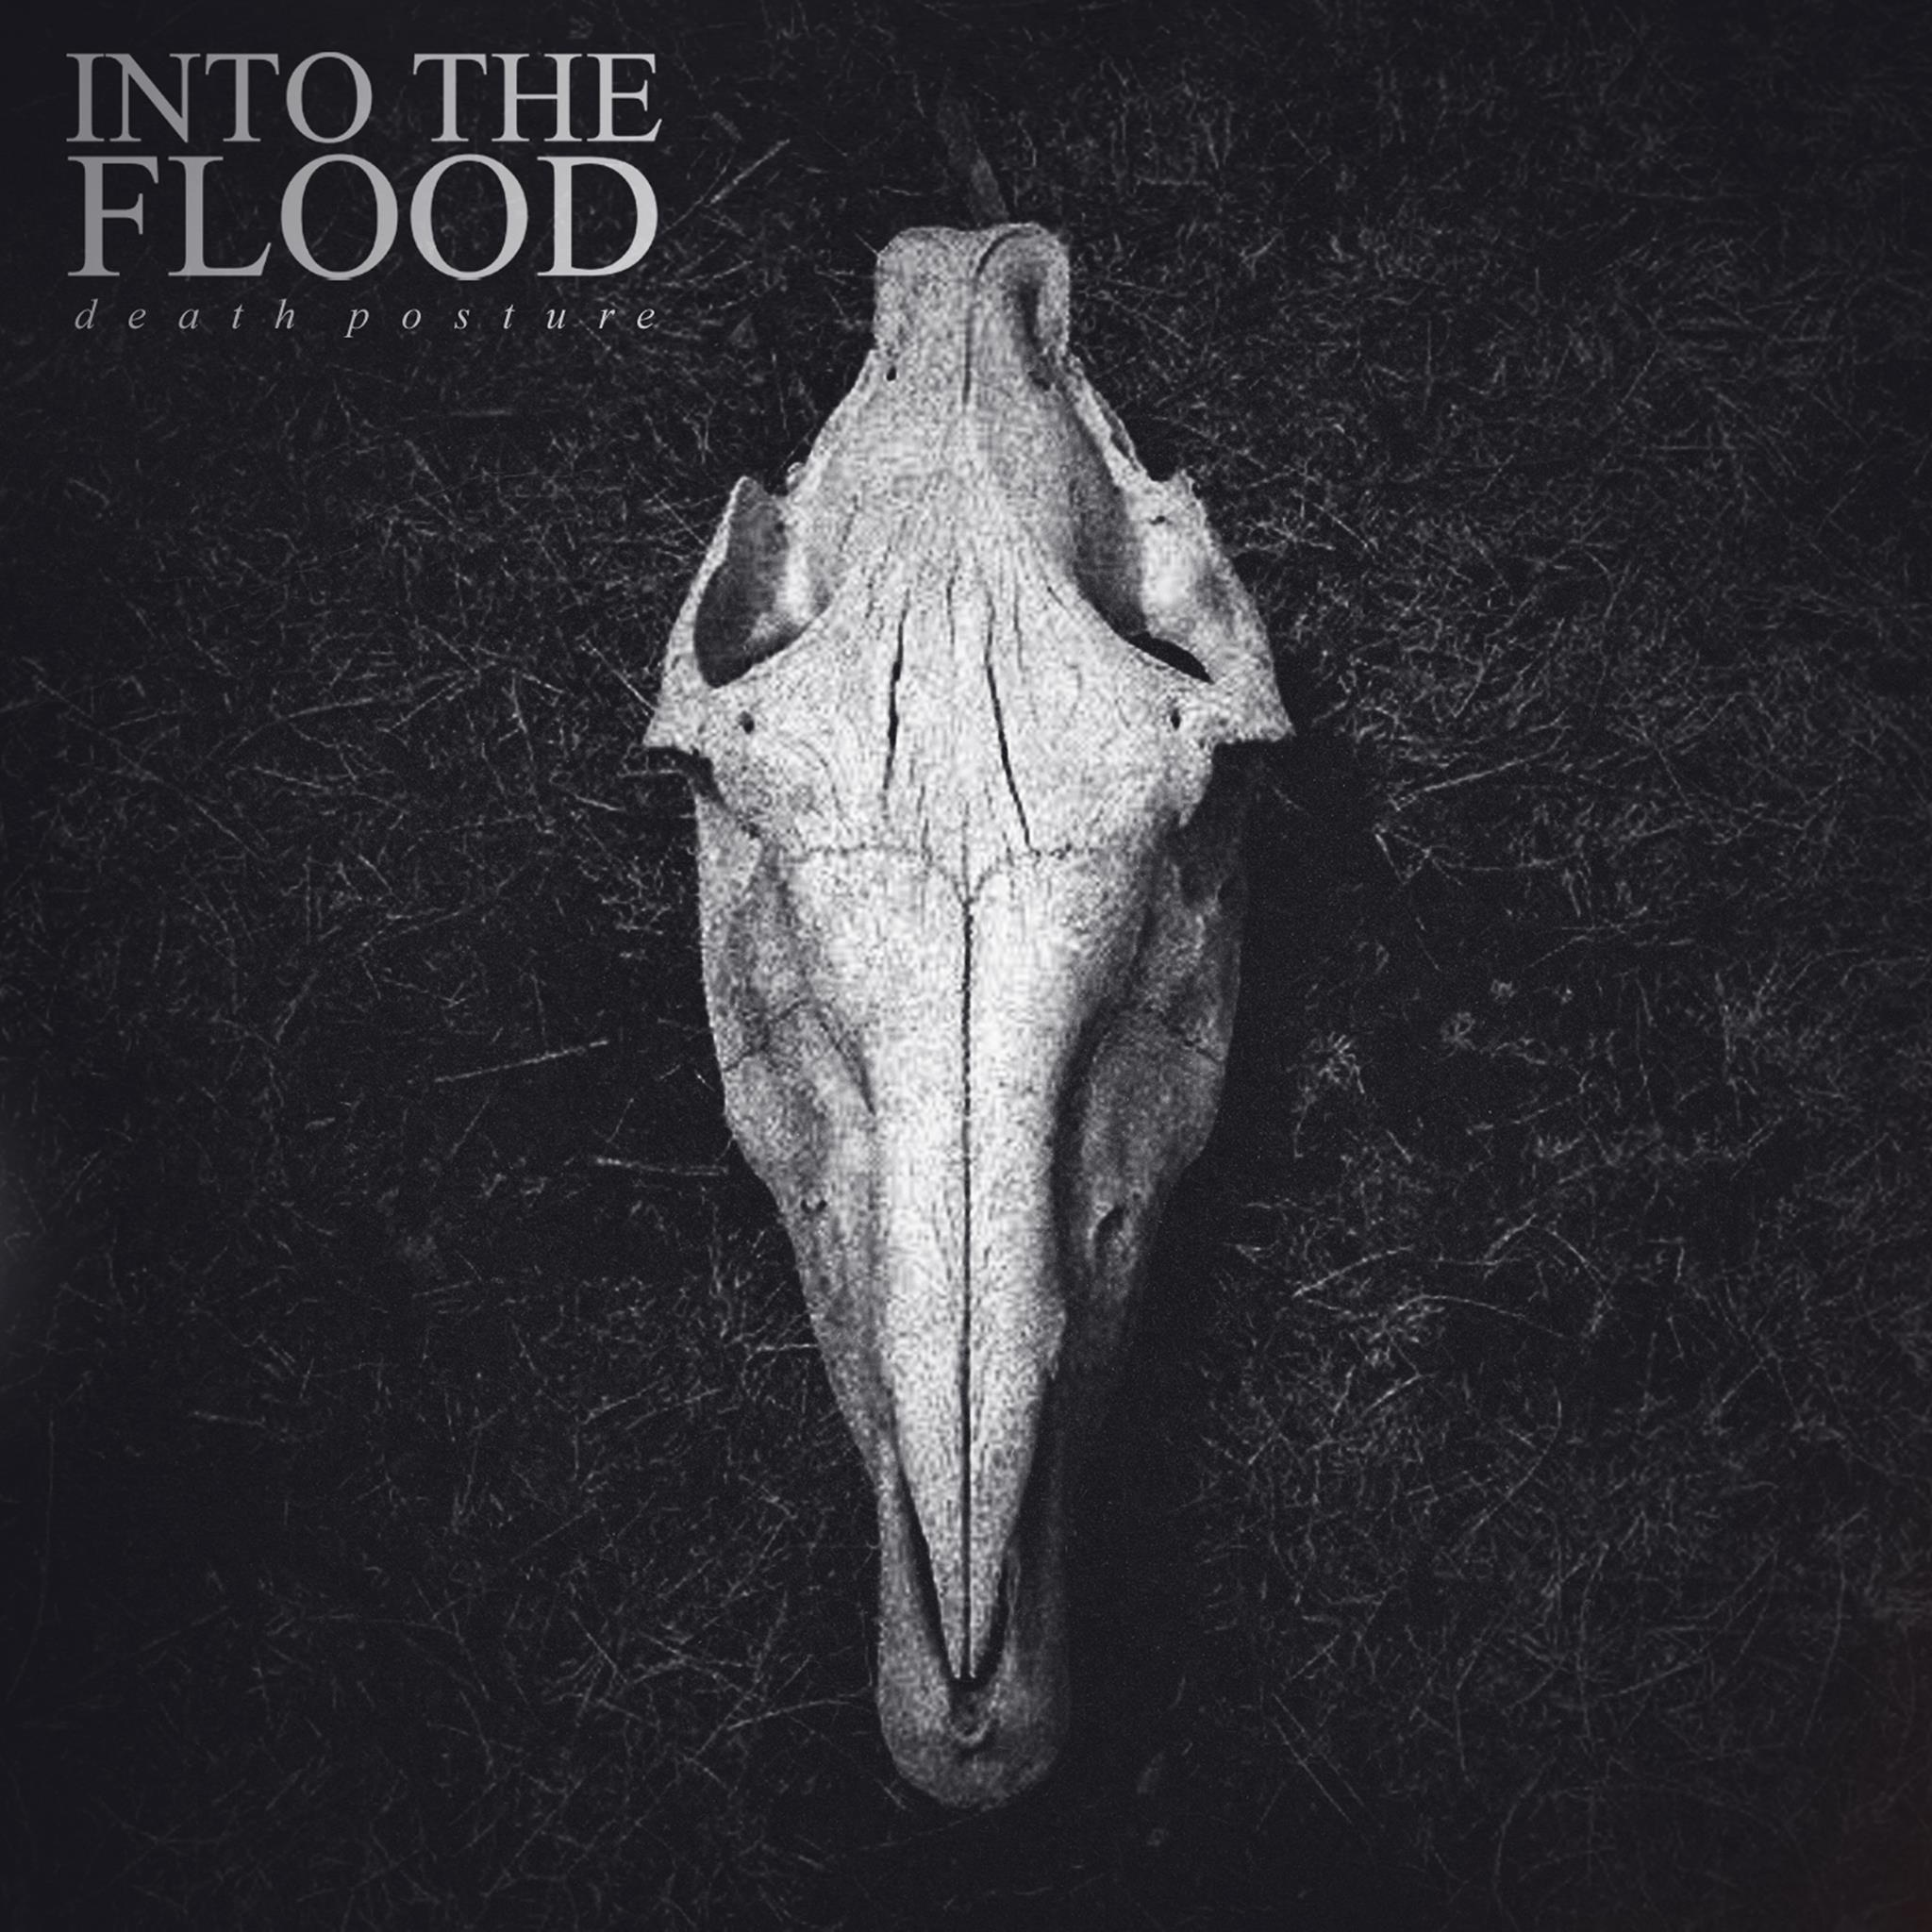 Into The Flood - The 72 Names Of God [single] (2015)